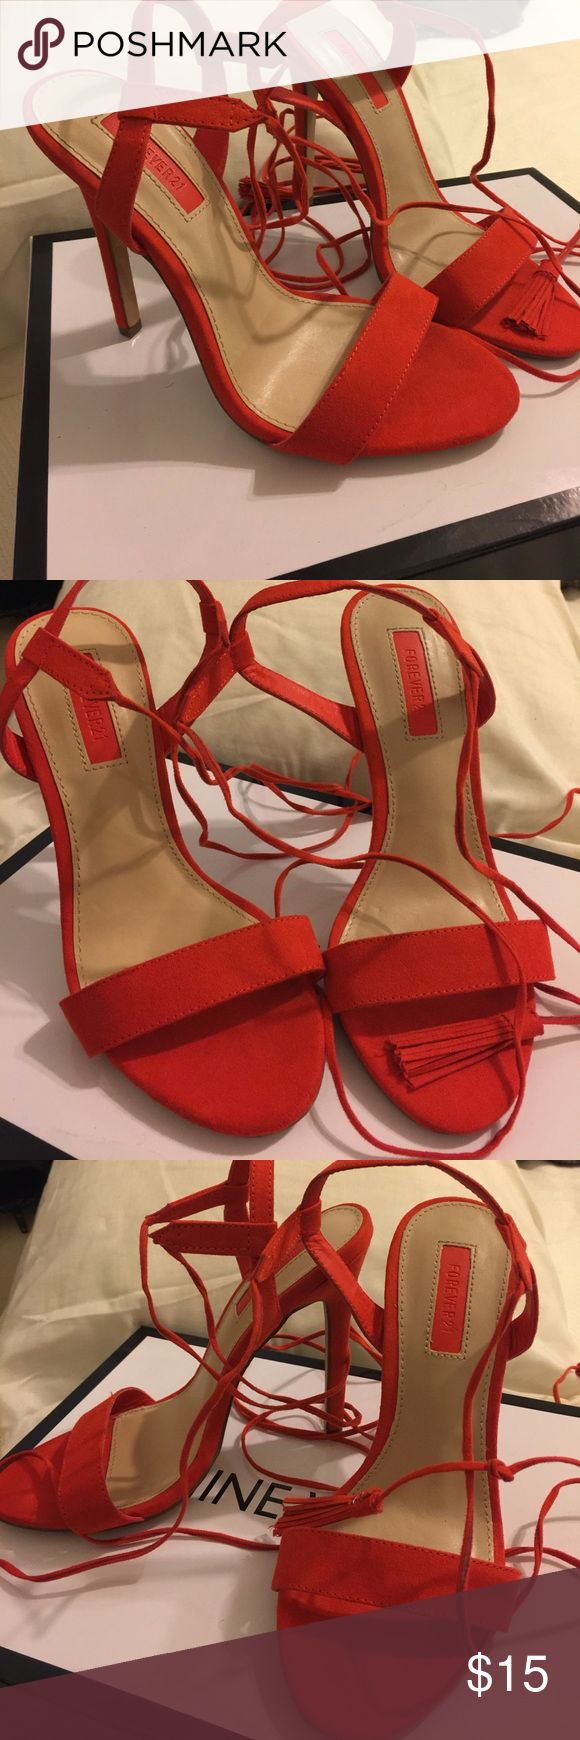 Red orange Heels Beautiful red orange strappy heels Forever 21 Shoes Heels